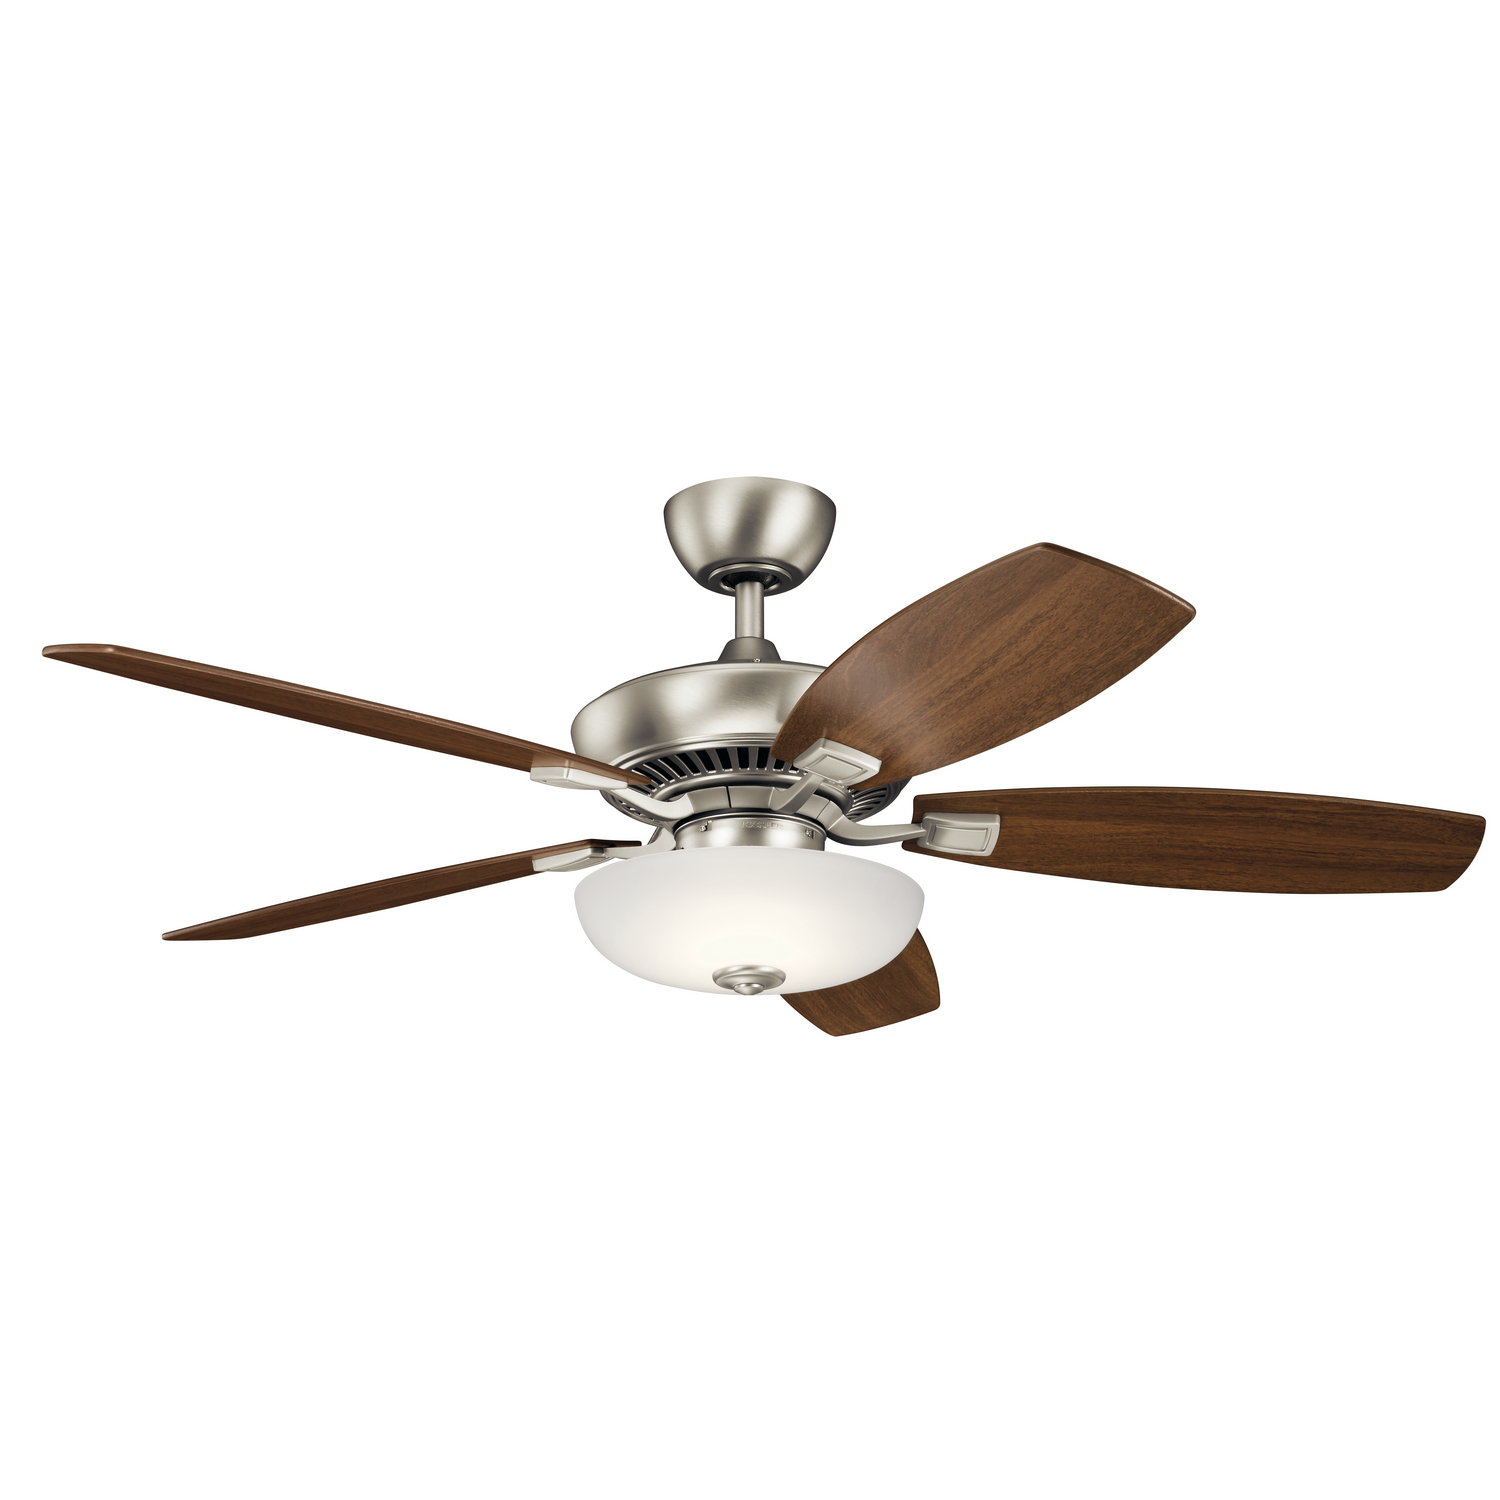 52 inchCeiling Fan from the Canfield Pro collection by Kichler 330013NI